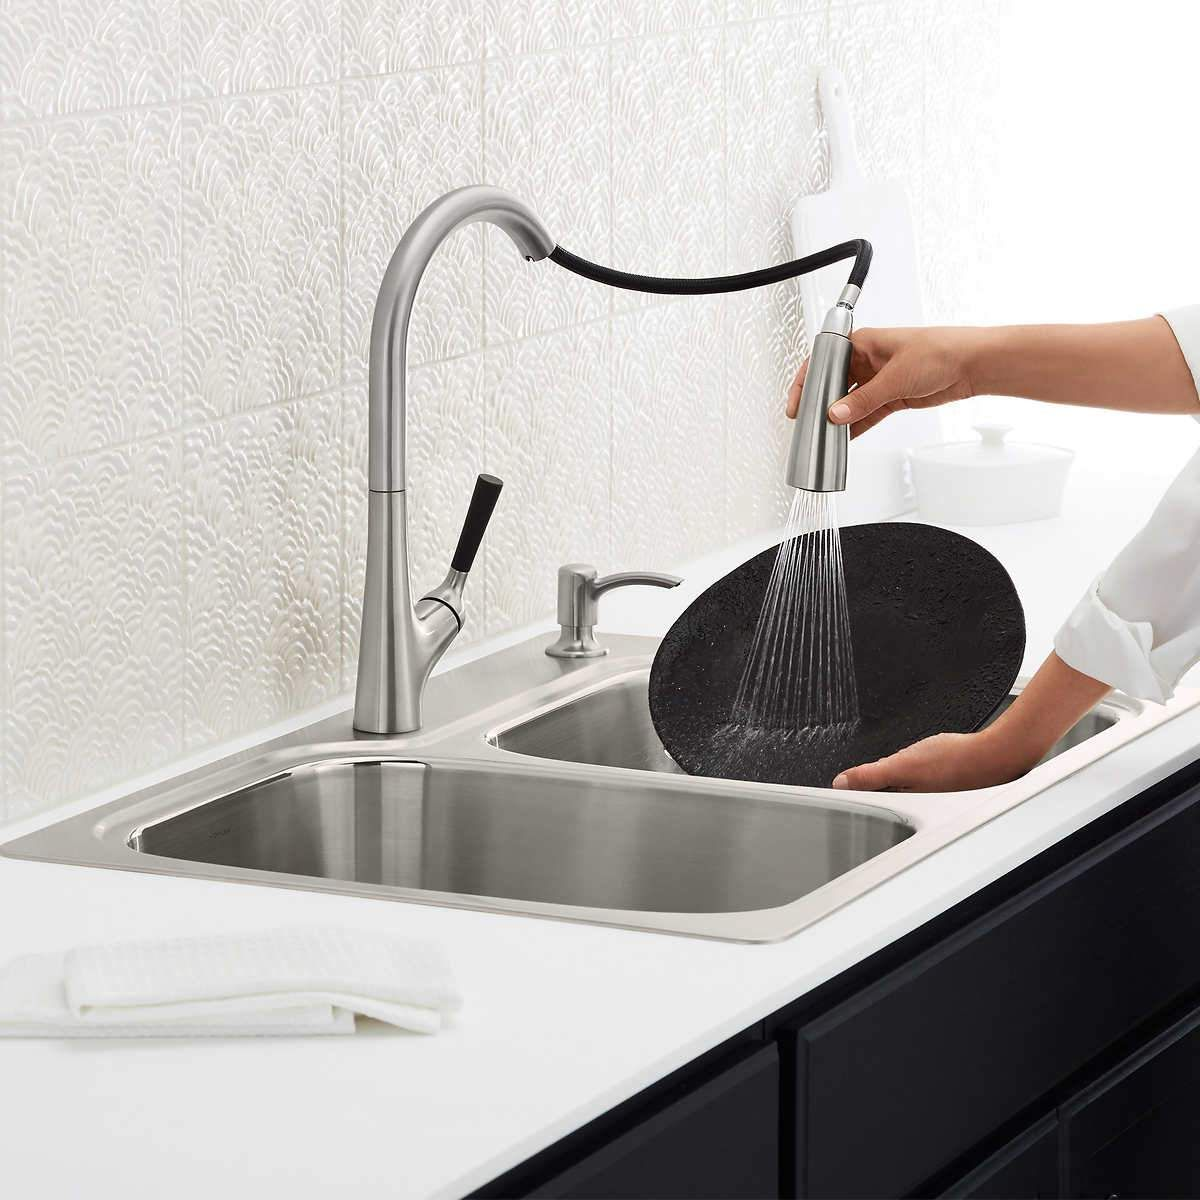 Kohler Stainless Steel Sink and Faucet Package | Products ...